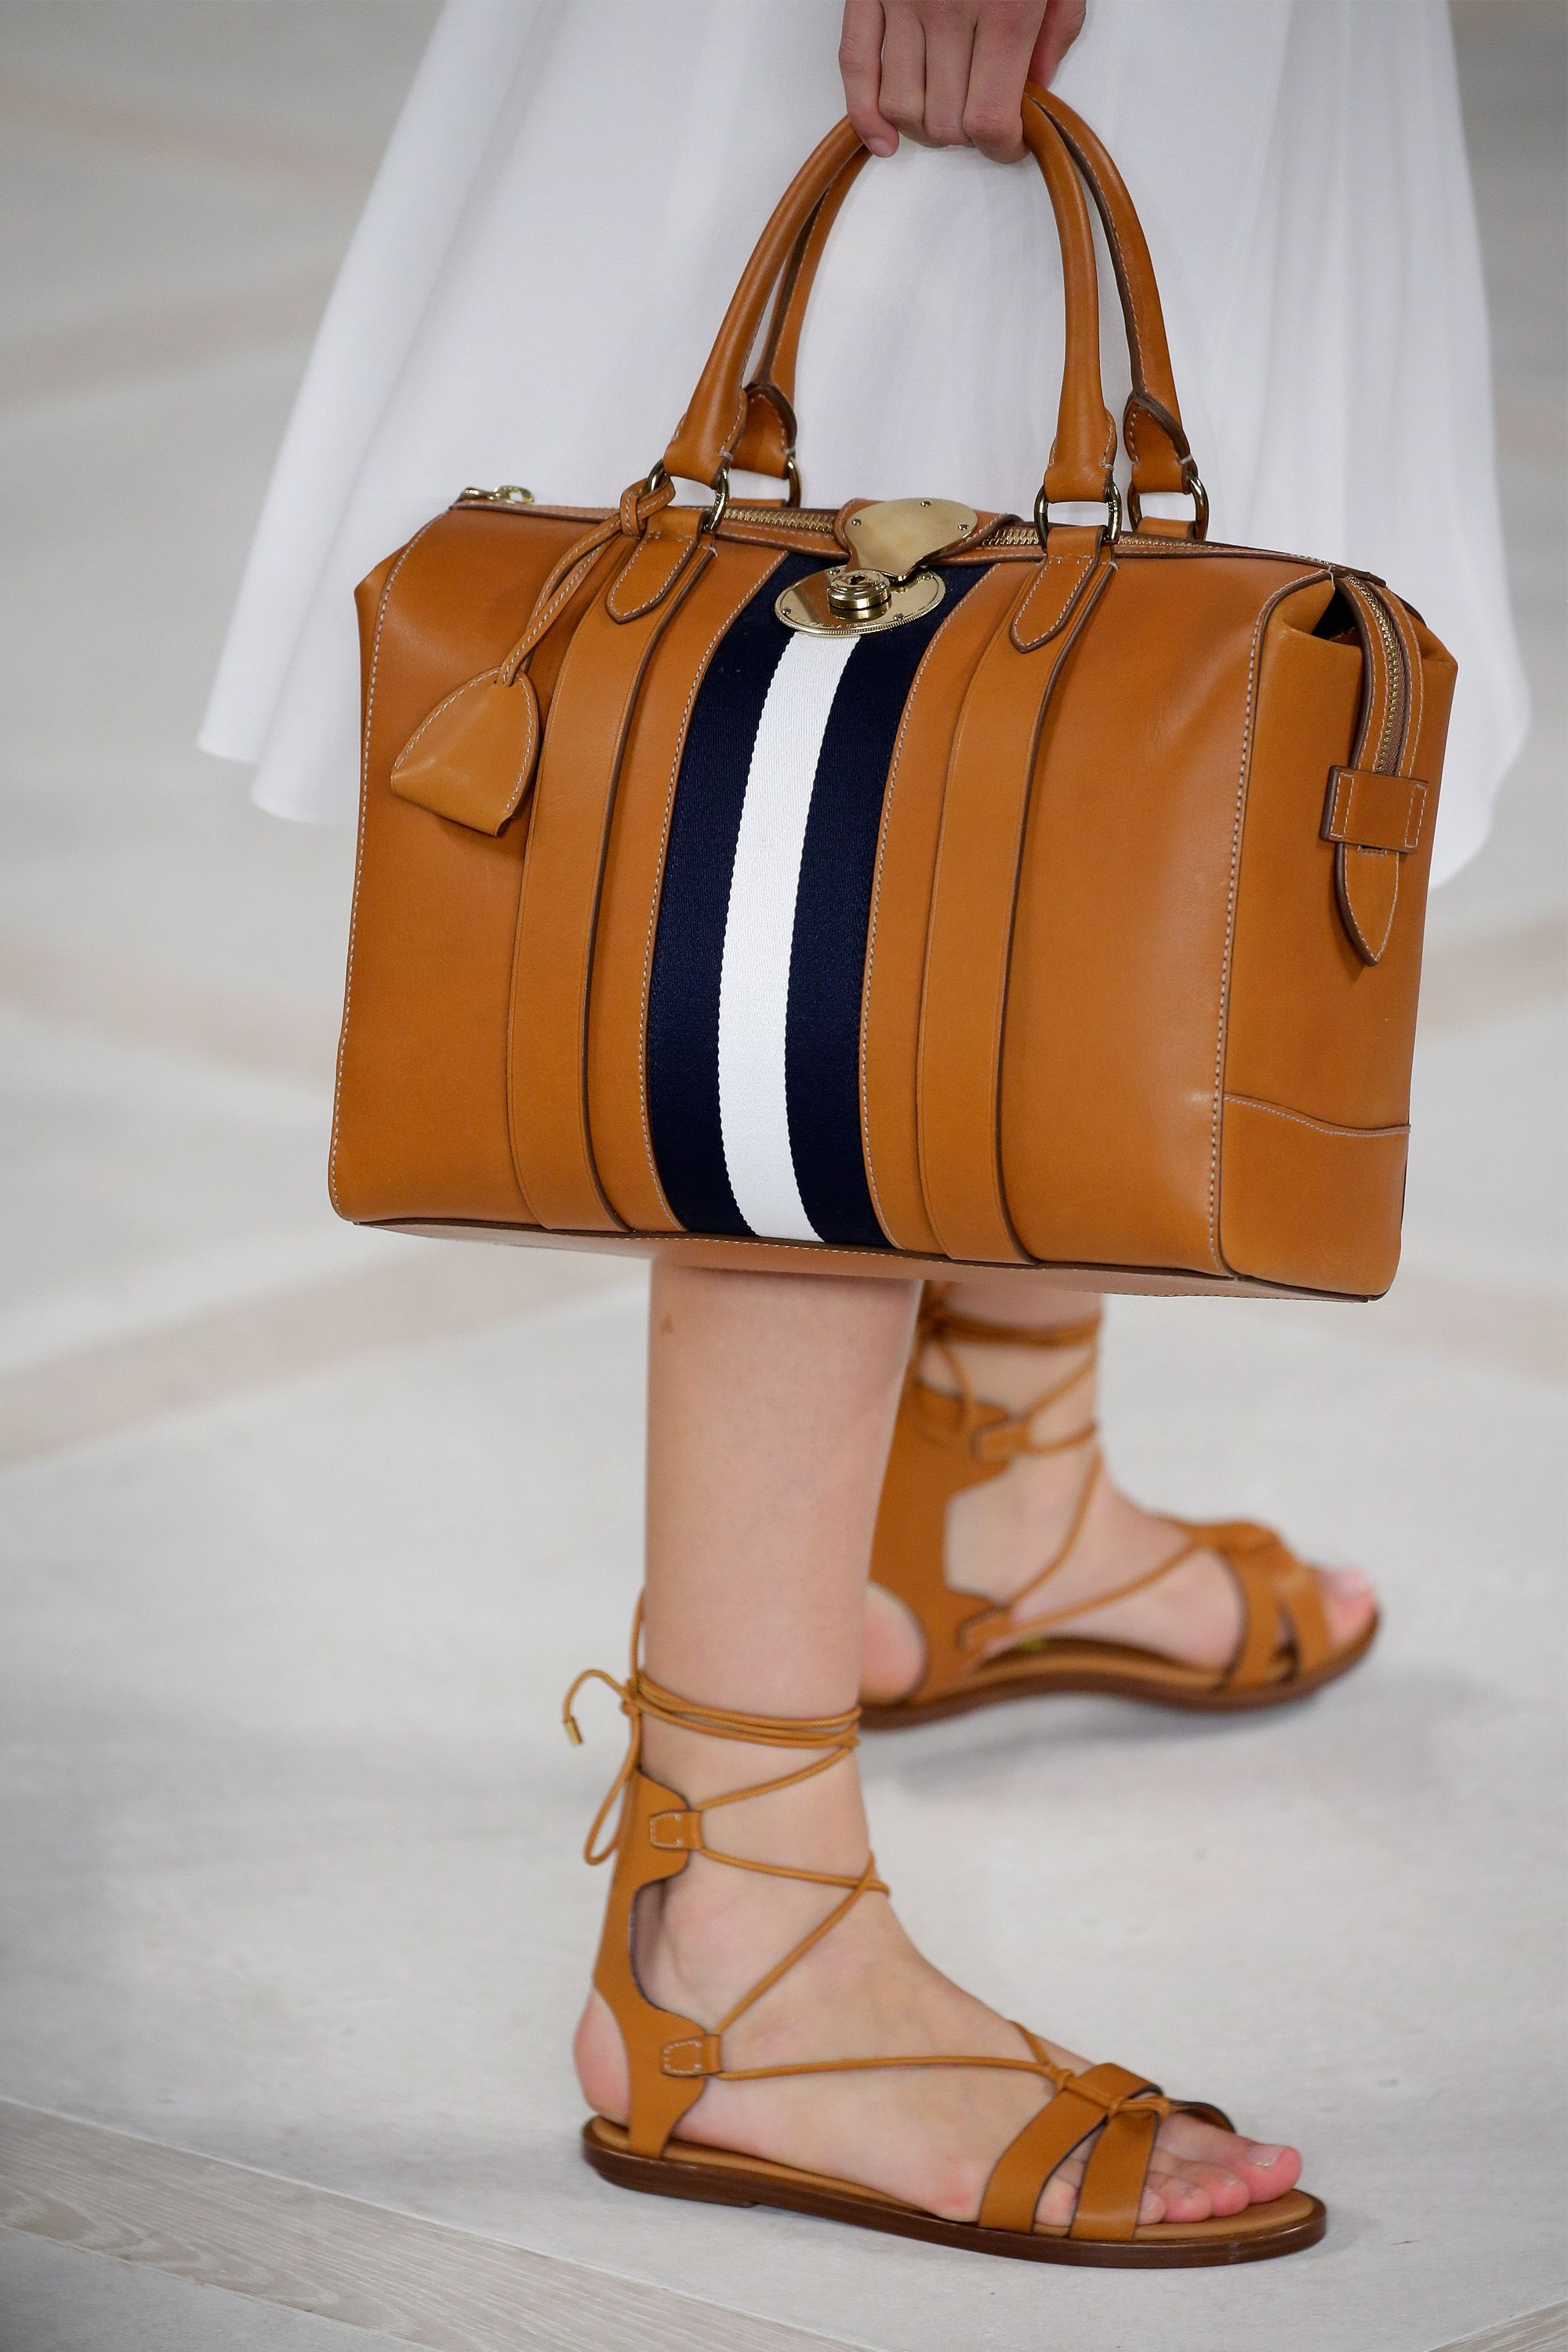 Spring 2016 Bags - The Best Handbags From New York Fashion Week ...